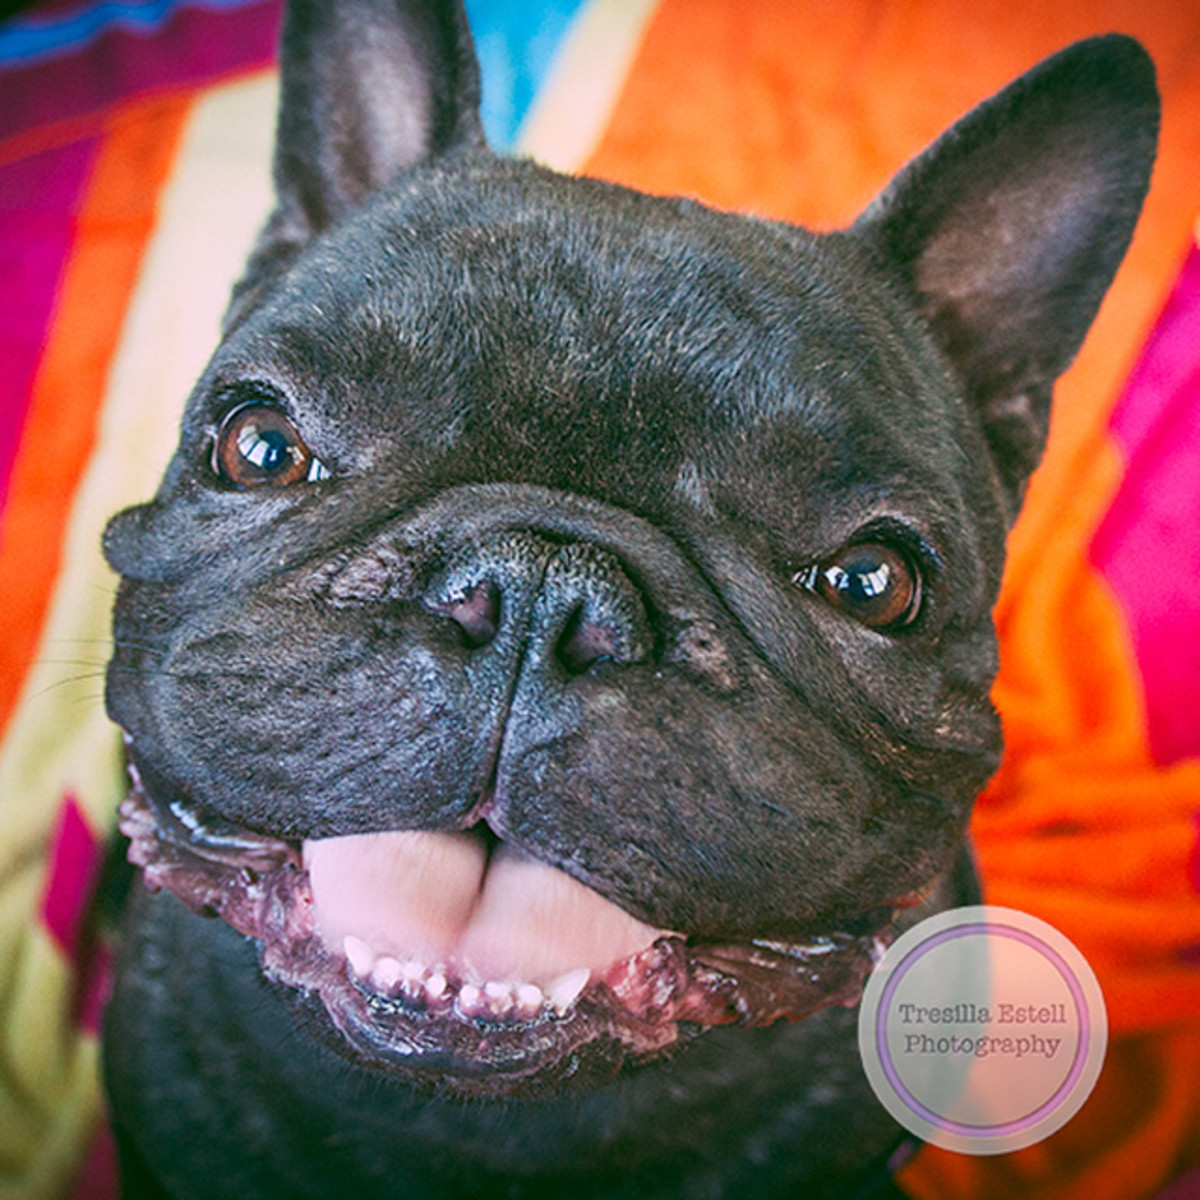 French Bulldog Training, Care & Health Issues to consider when Buying a Puppy